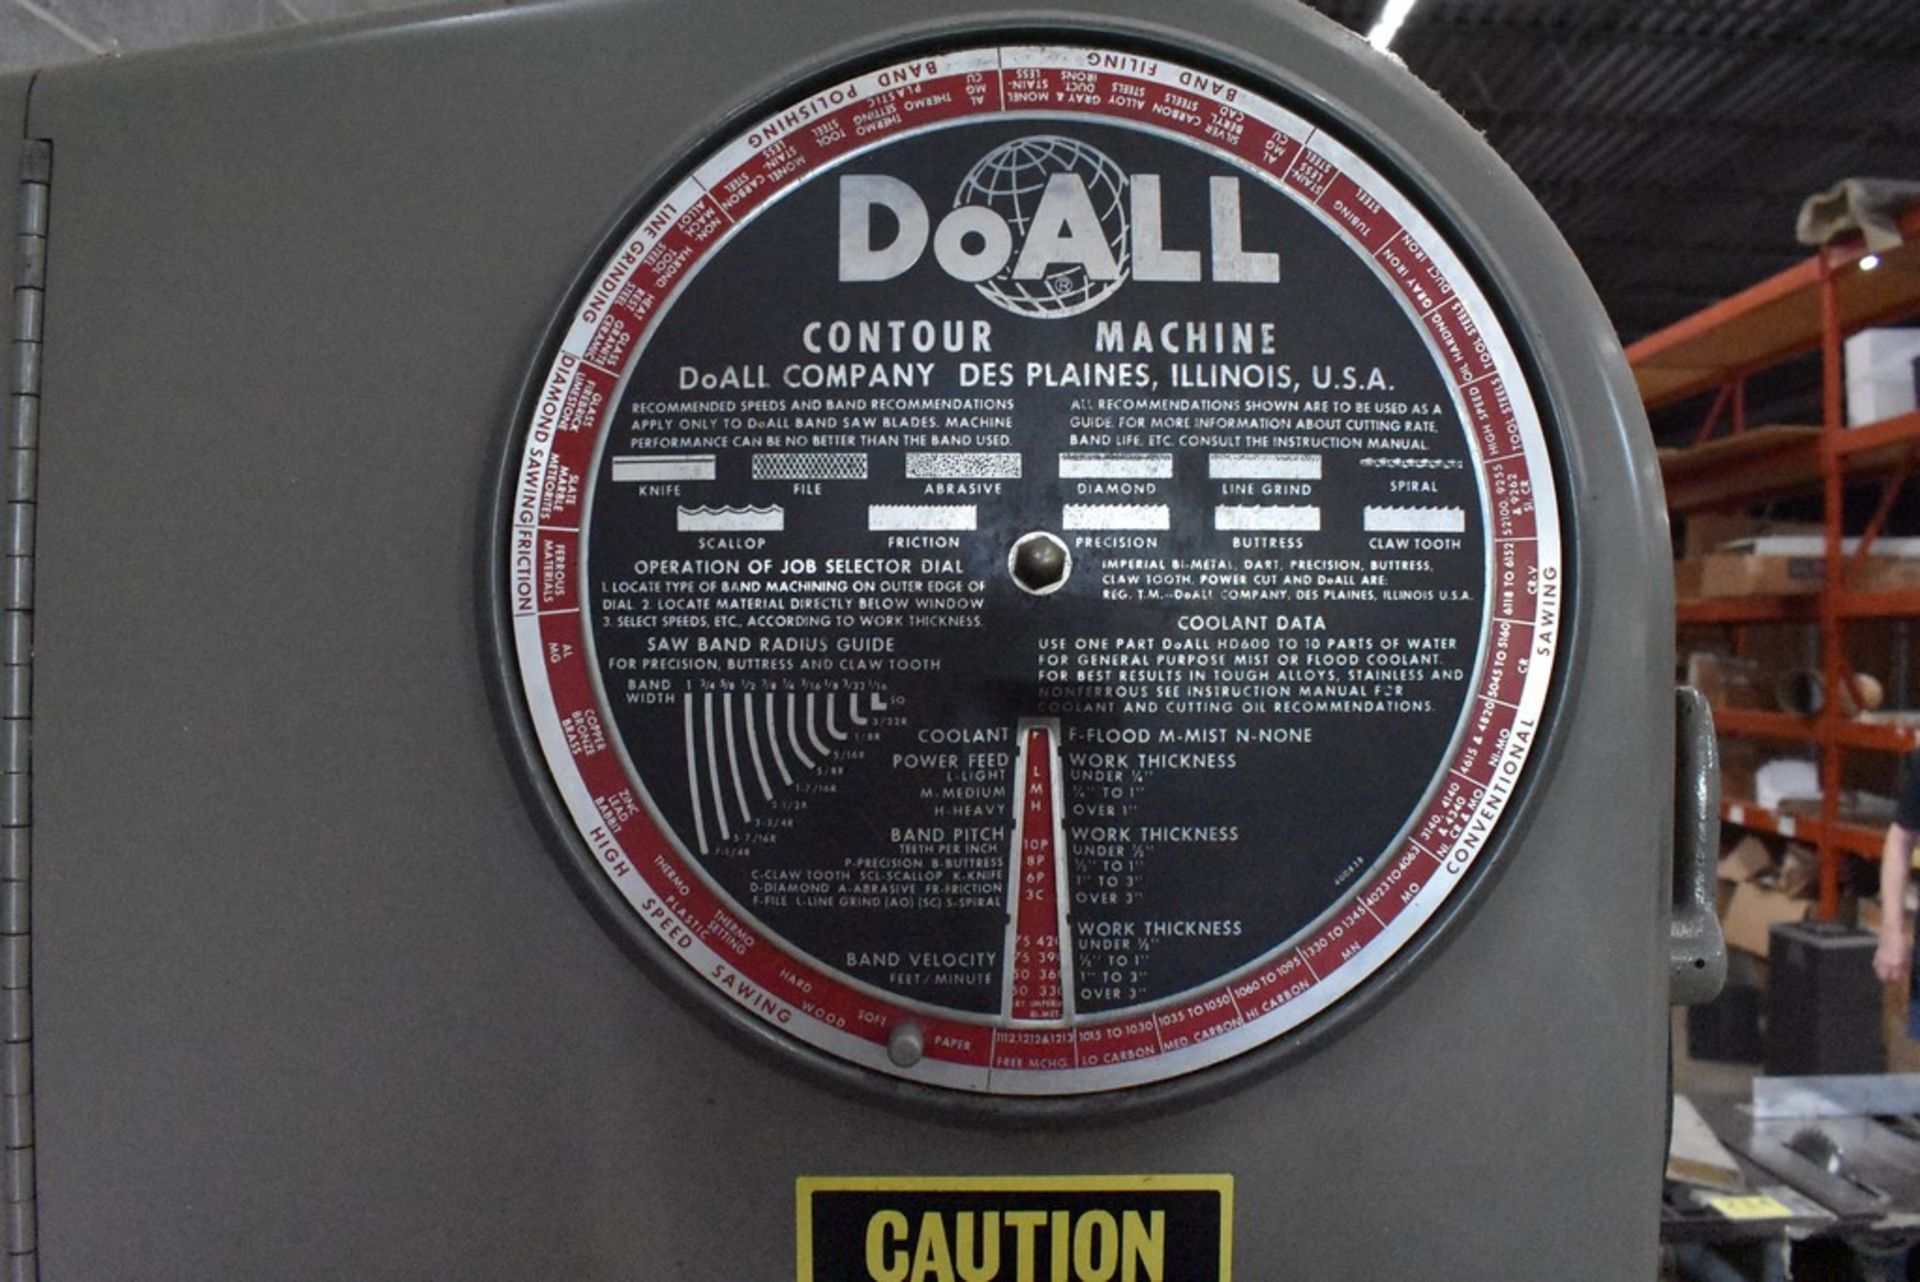 """DOALL 16"""" MODEL 1612-1 VERTICAL BAND SAW, S/N 148-681291, WITH BLADE WELDER - Image 2 of 9"""